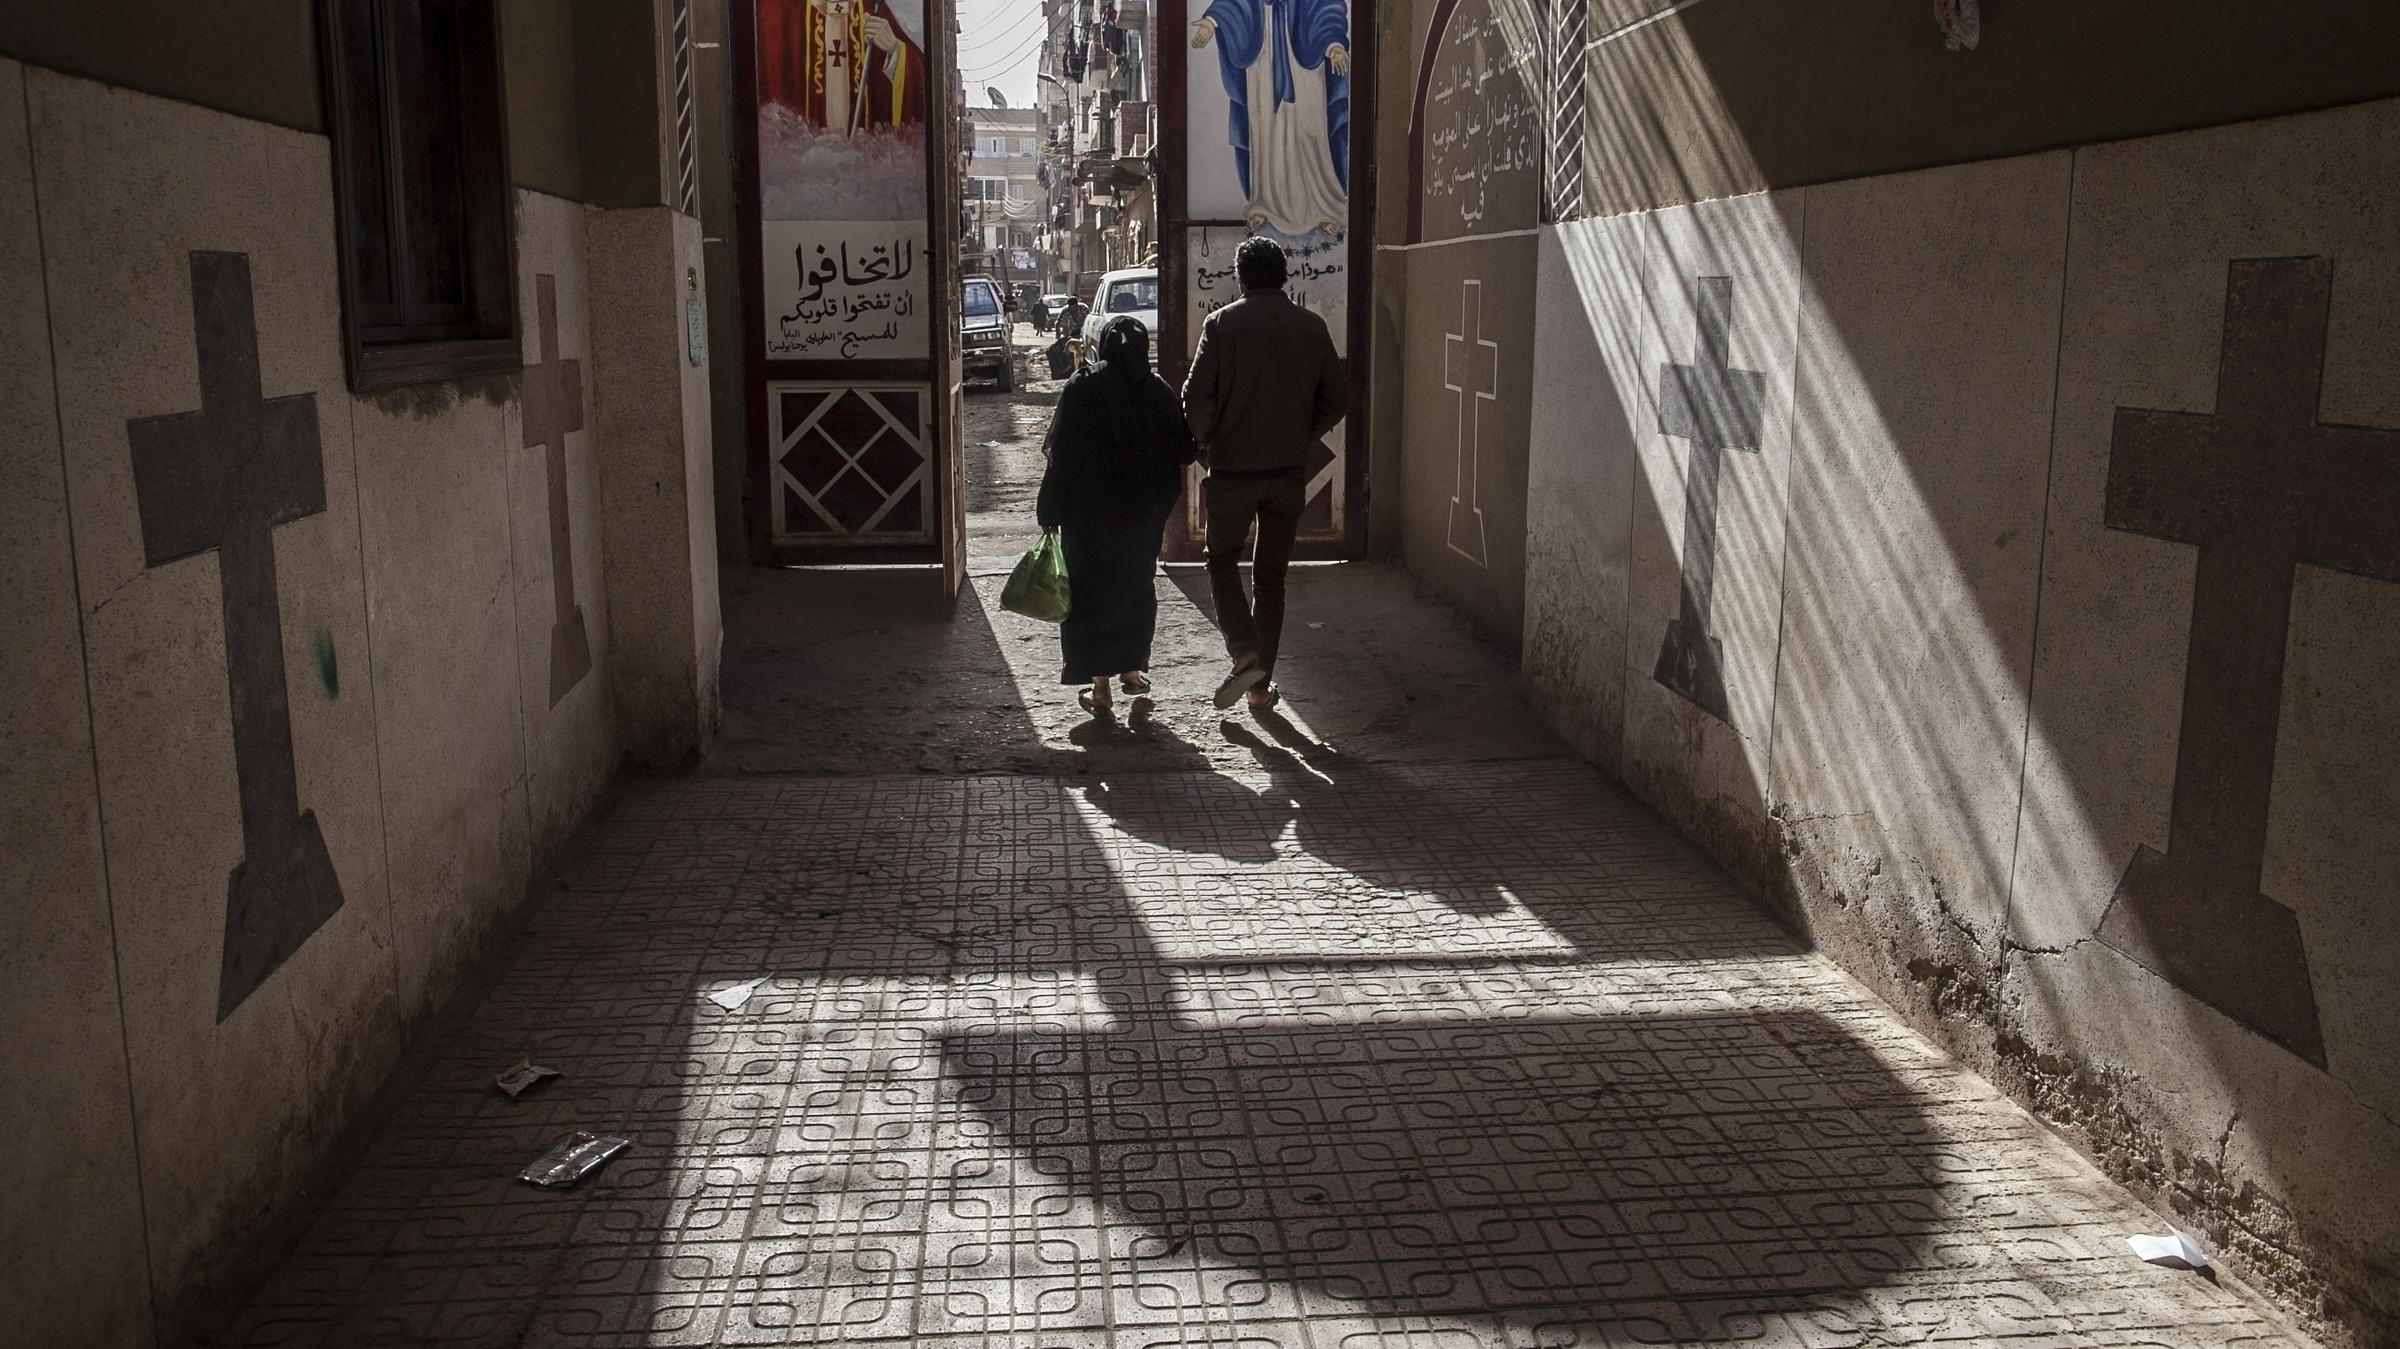 ISIS claims responsibility for attack against Copts in Egypt